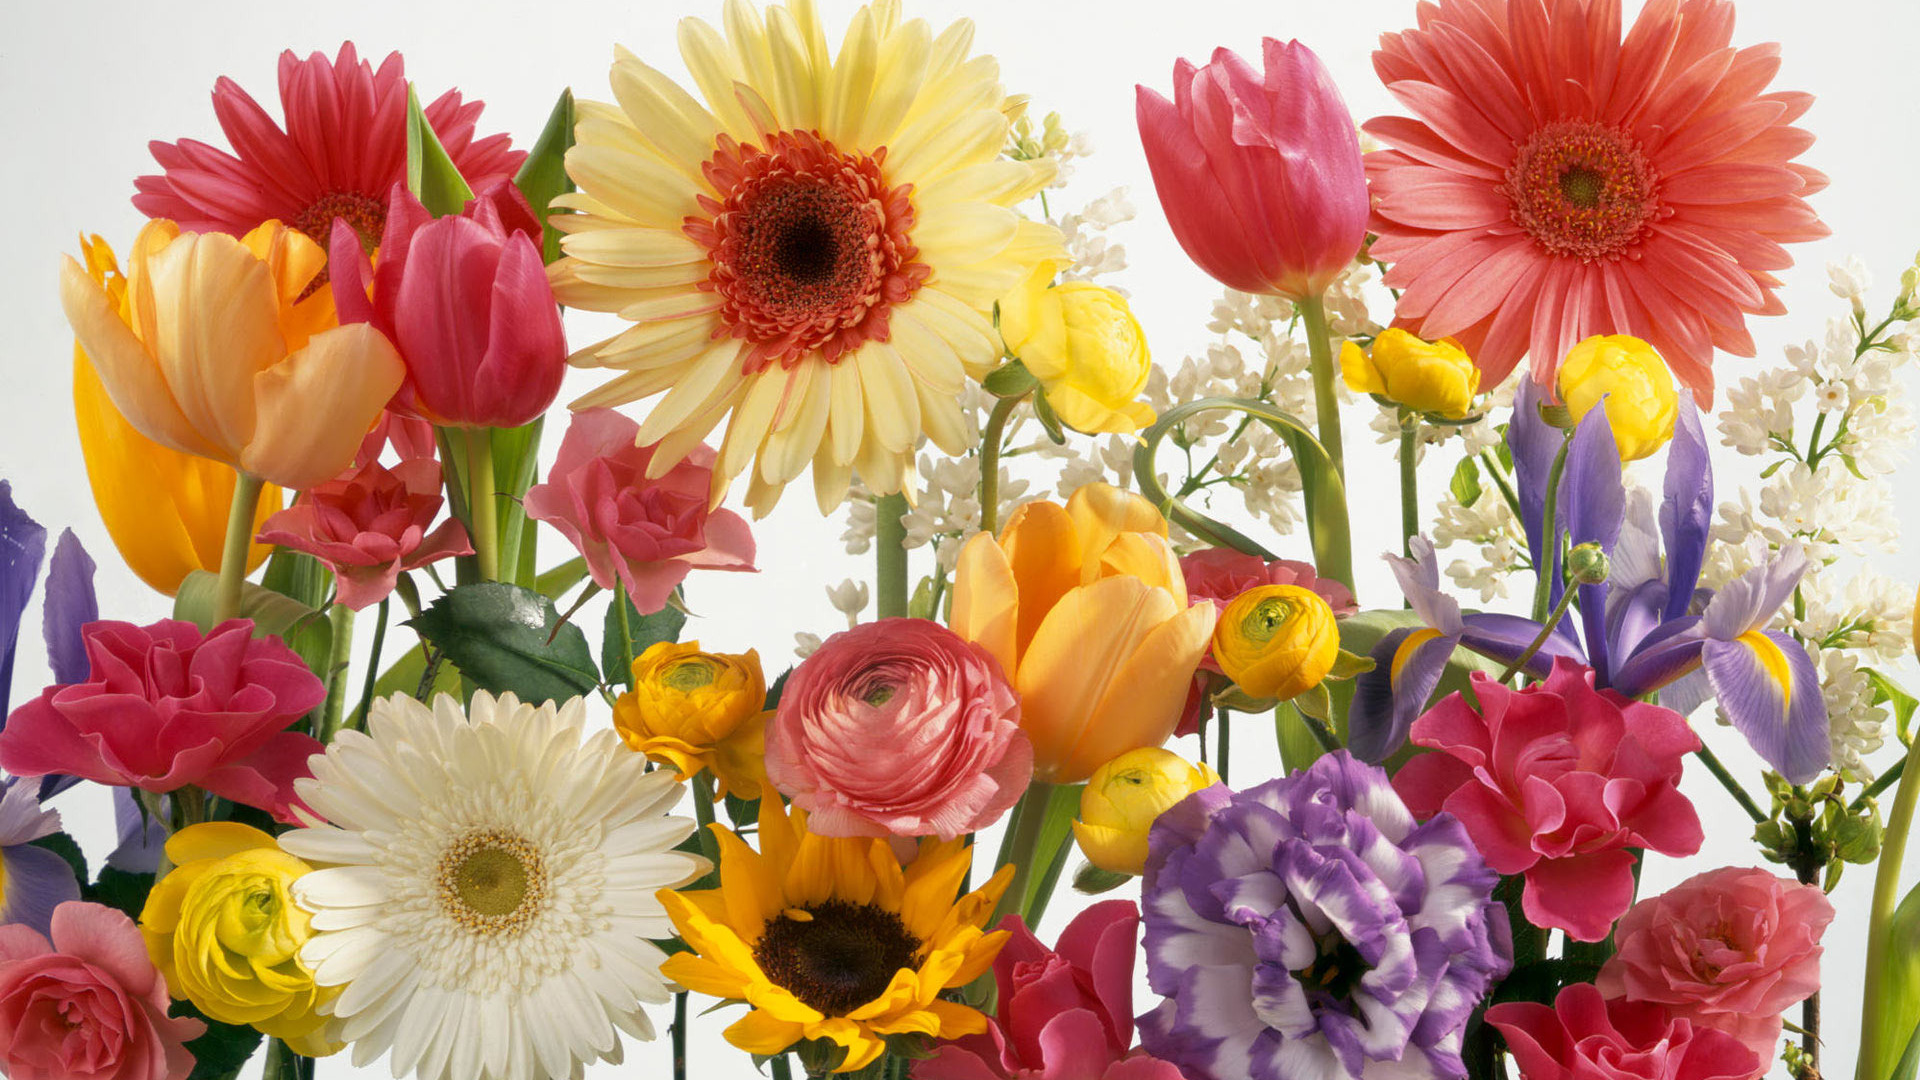 gather flowers wallpapers - photo #1